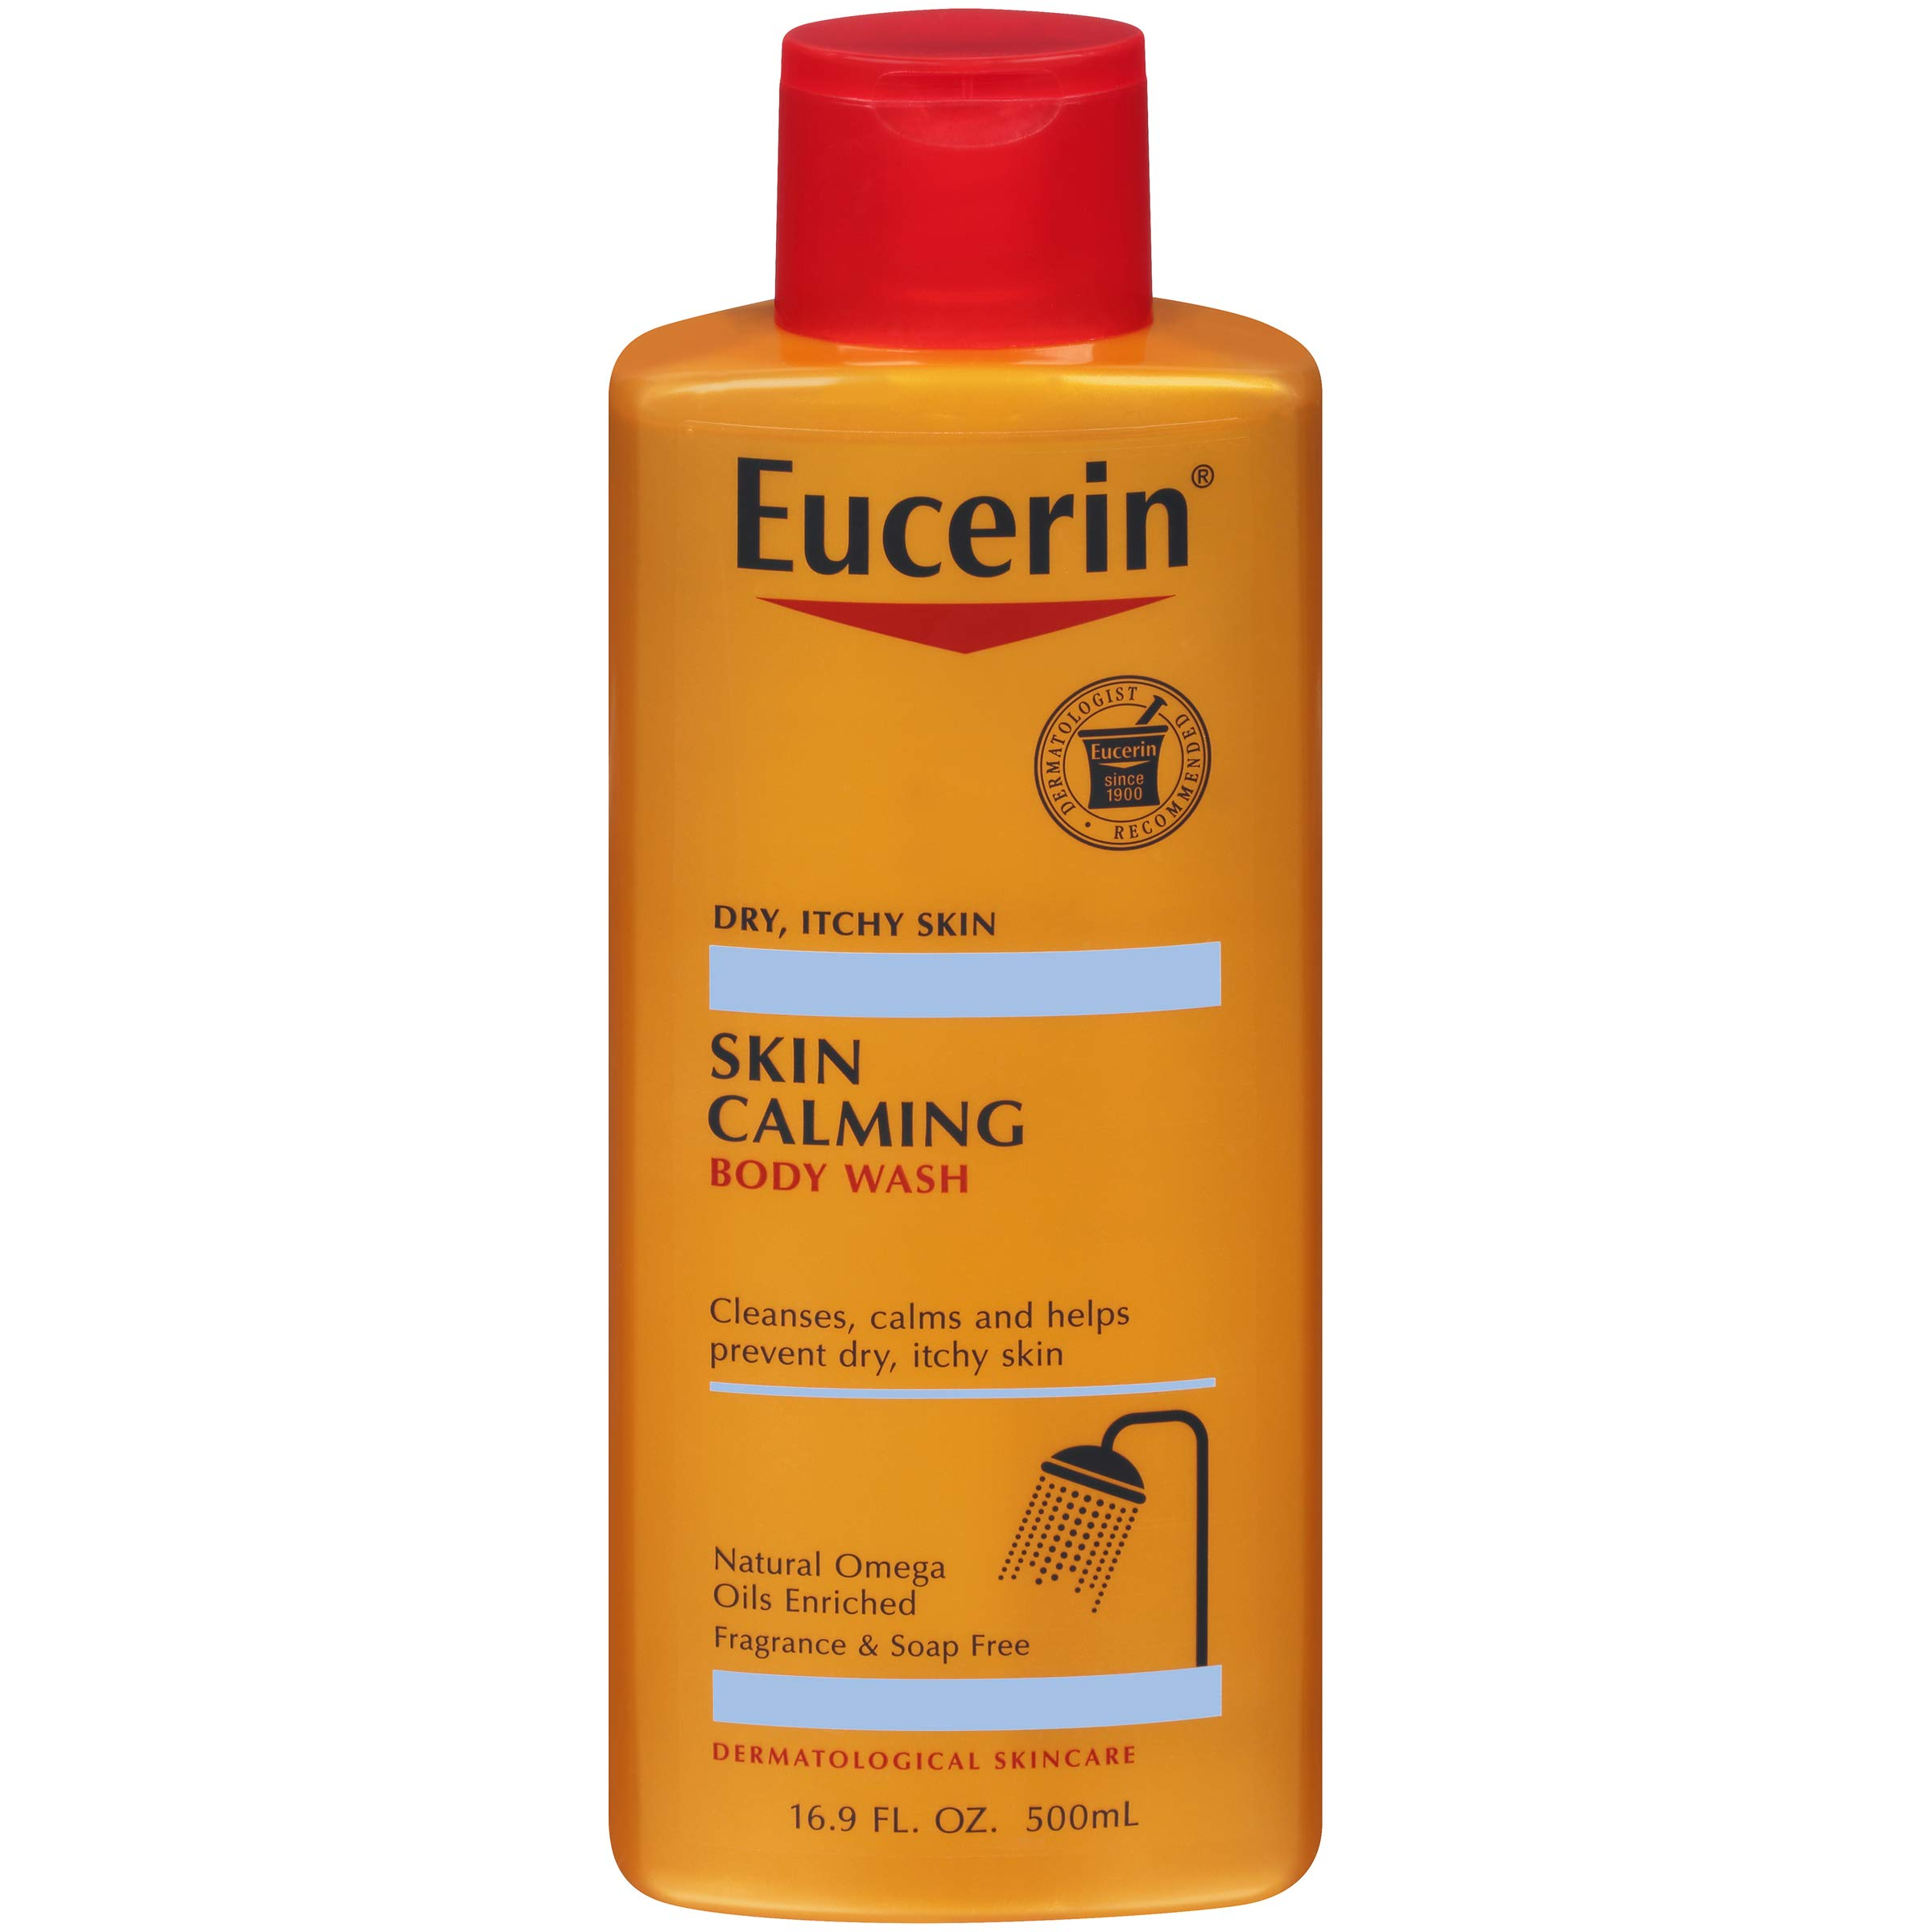 Eucerin Skin Calming Body Wash - Cleanses and Calms to Help Prevent Dry, Itchy Skin - 16.9 fl. oz. Bottle by Eucerin